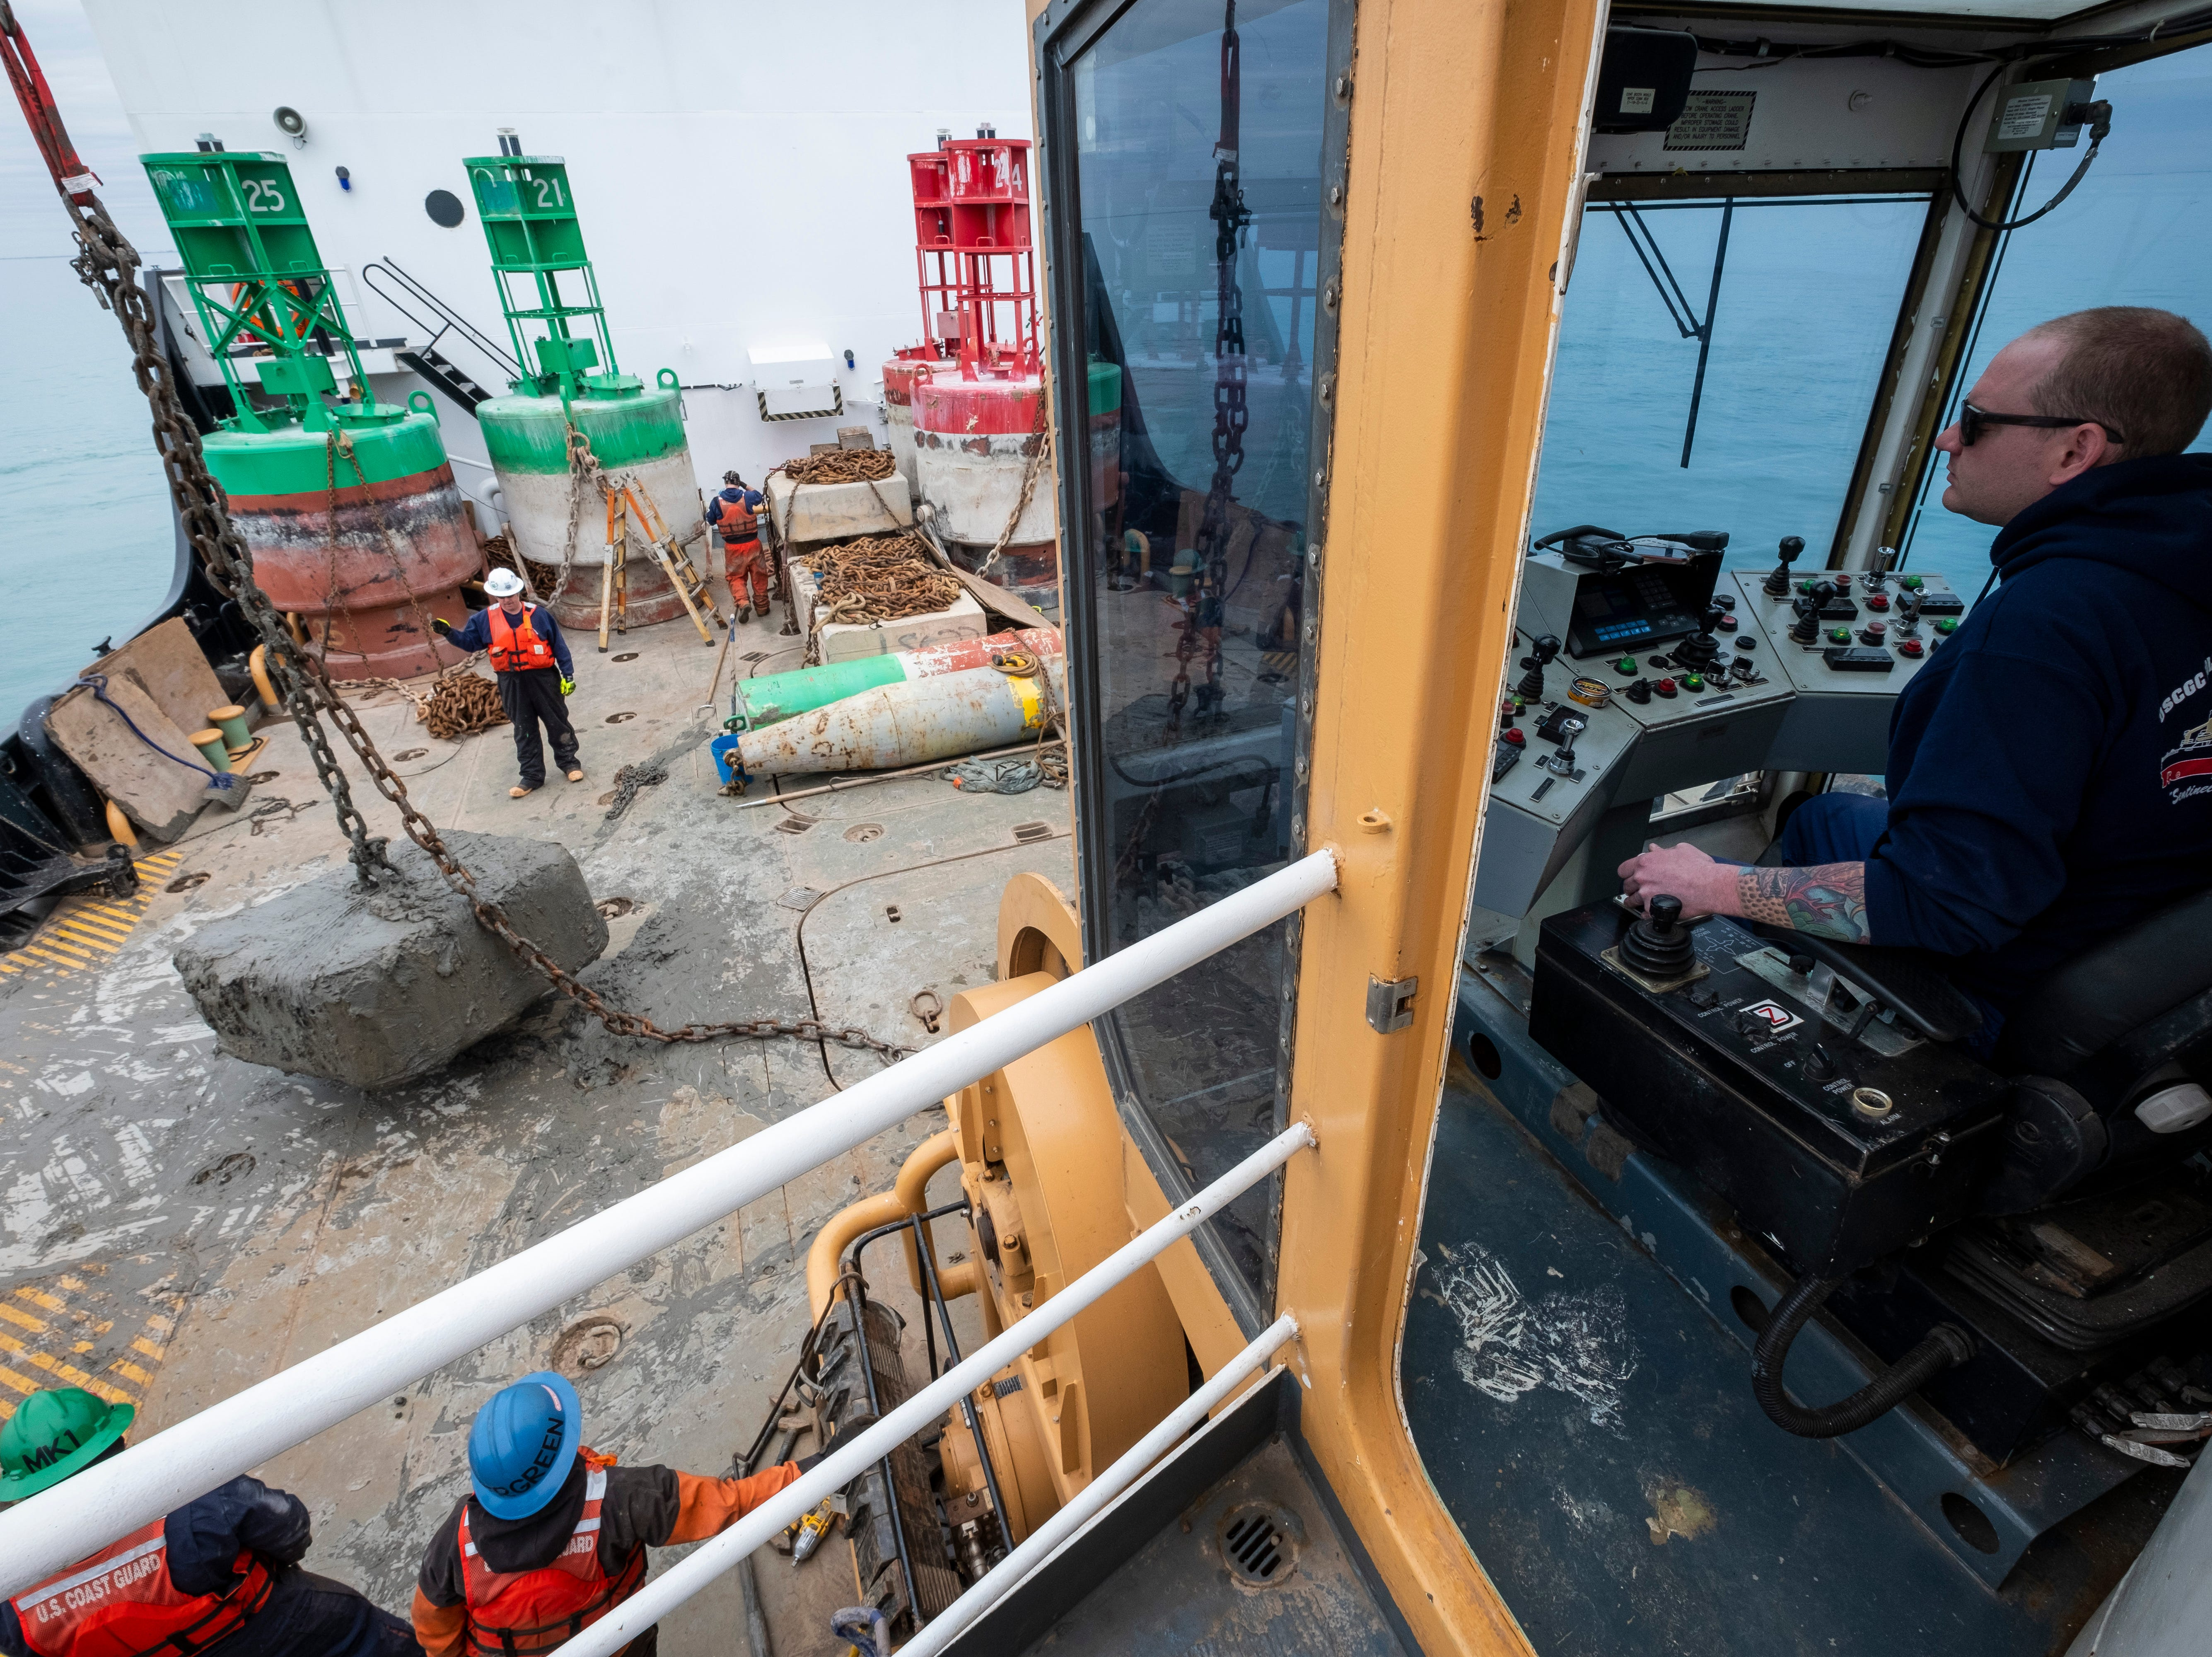 """U.S. Coast Guard HS1 Joshua Simpson operates the Hollyhock's crane to move a large stone back into Lake St. Clair from the ship's deck Thursday, April 25, 2019. Simpson is the ship's primary medical person, but he also enjoys operating the crane. """"I just like to come up here and have fun on here,"""" he said. """"Once I finish my job and it's more relaxed, I'll come up here and hang out."""""""